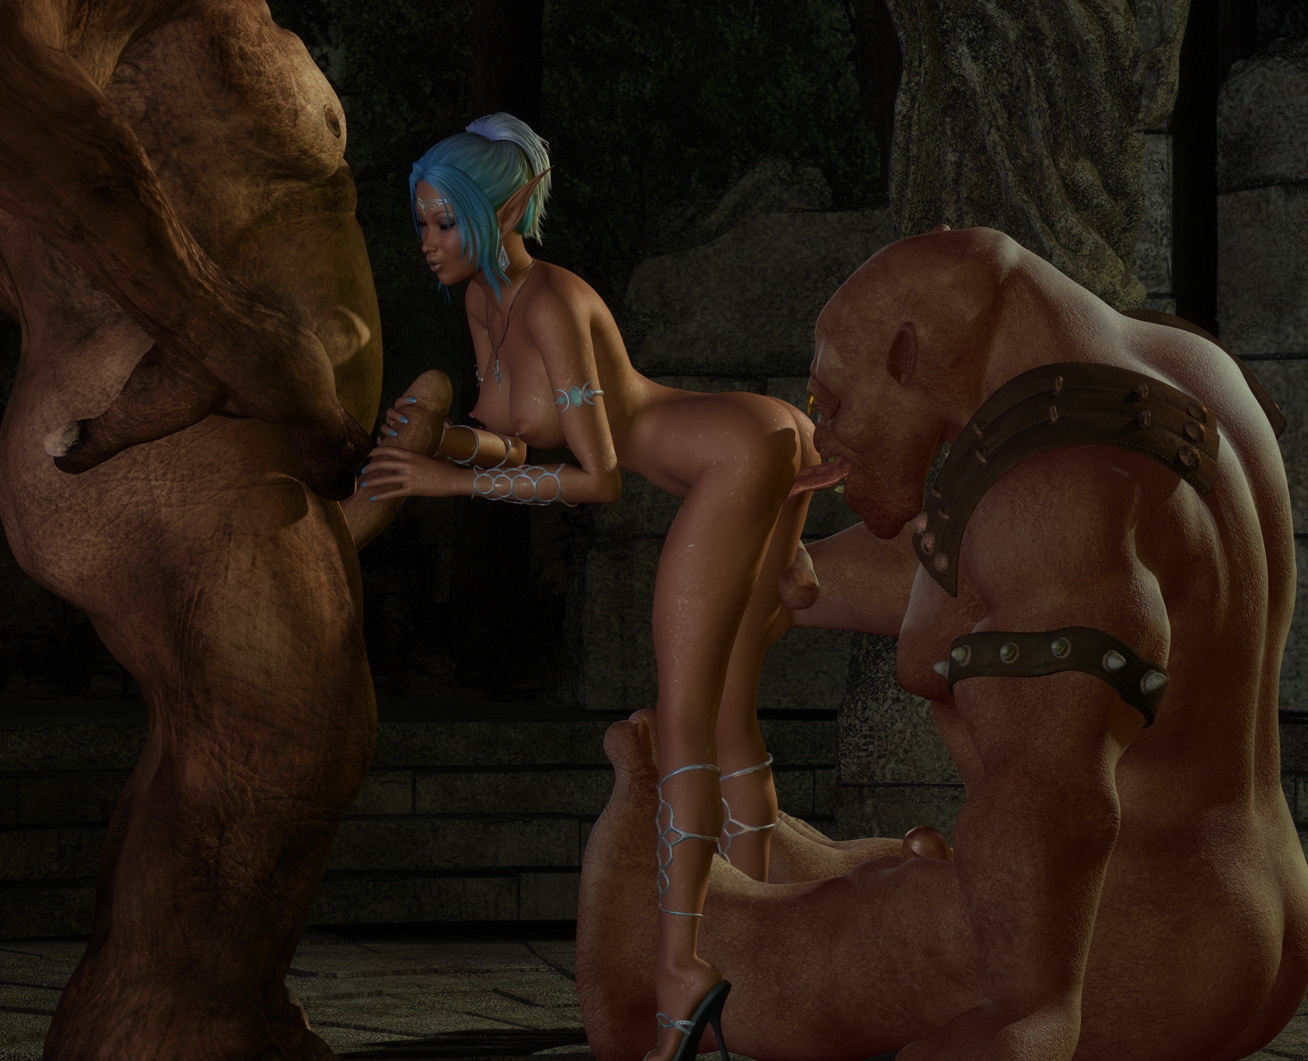 Ogre naked anime pic